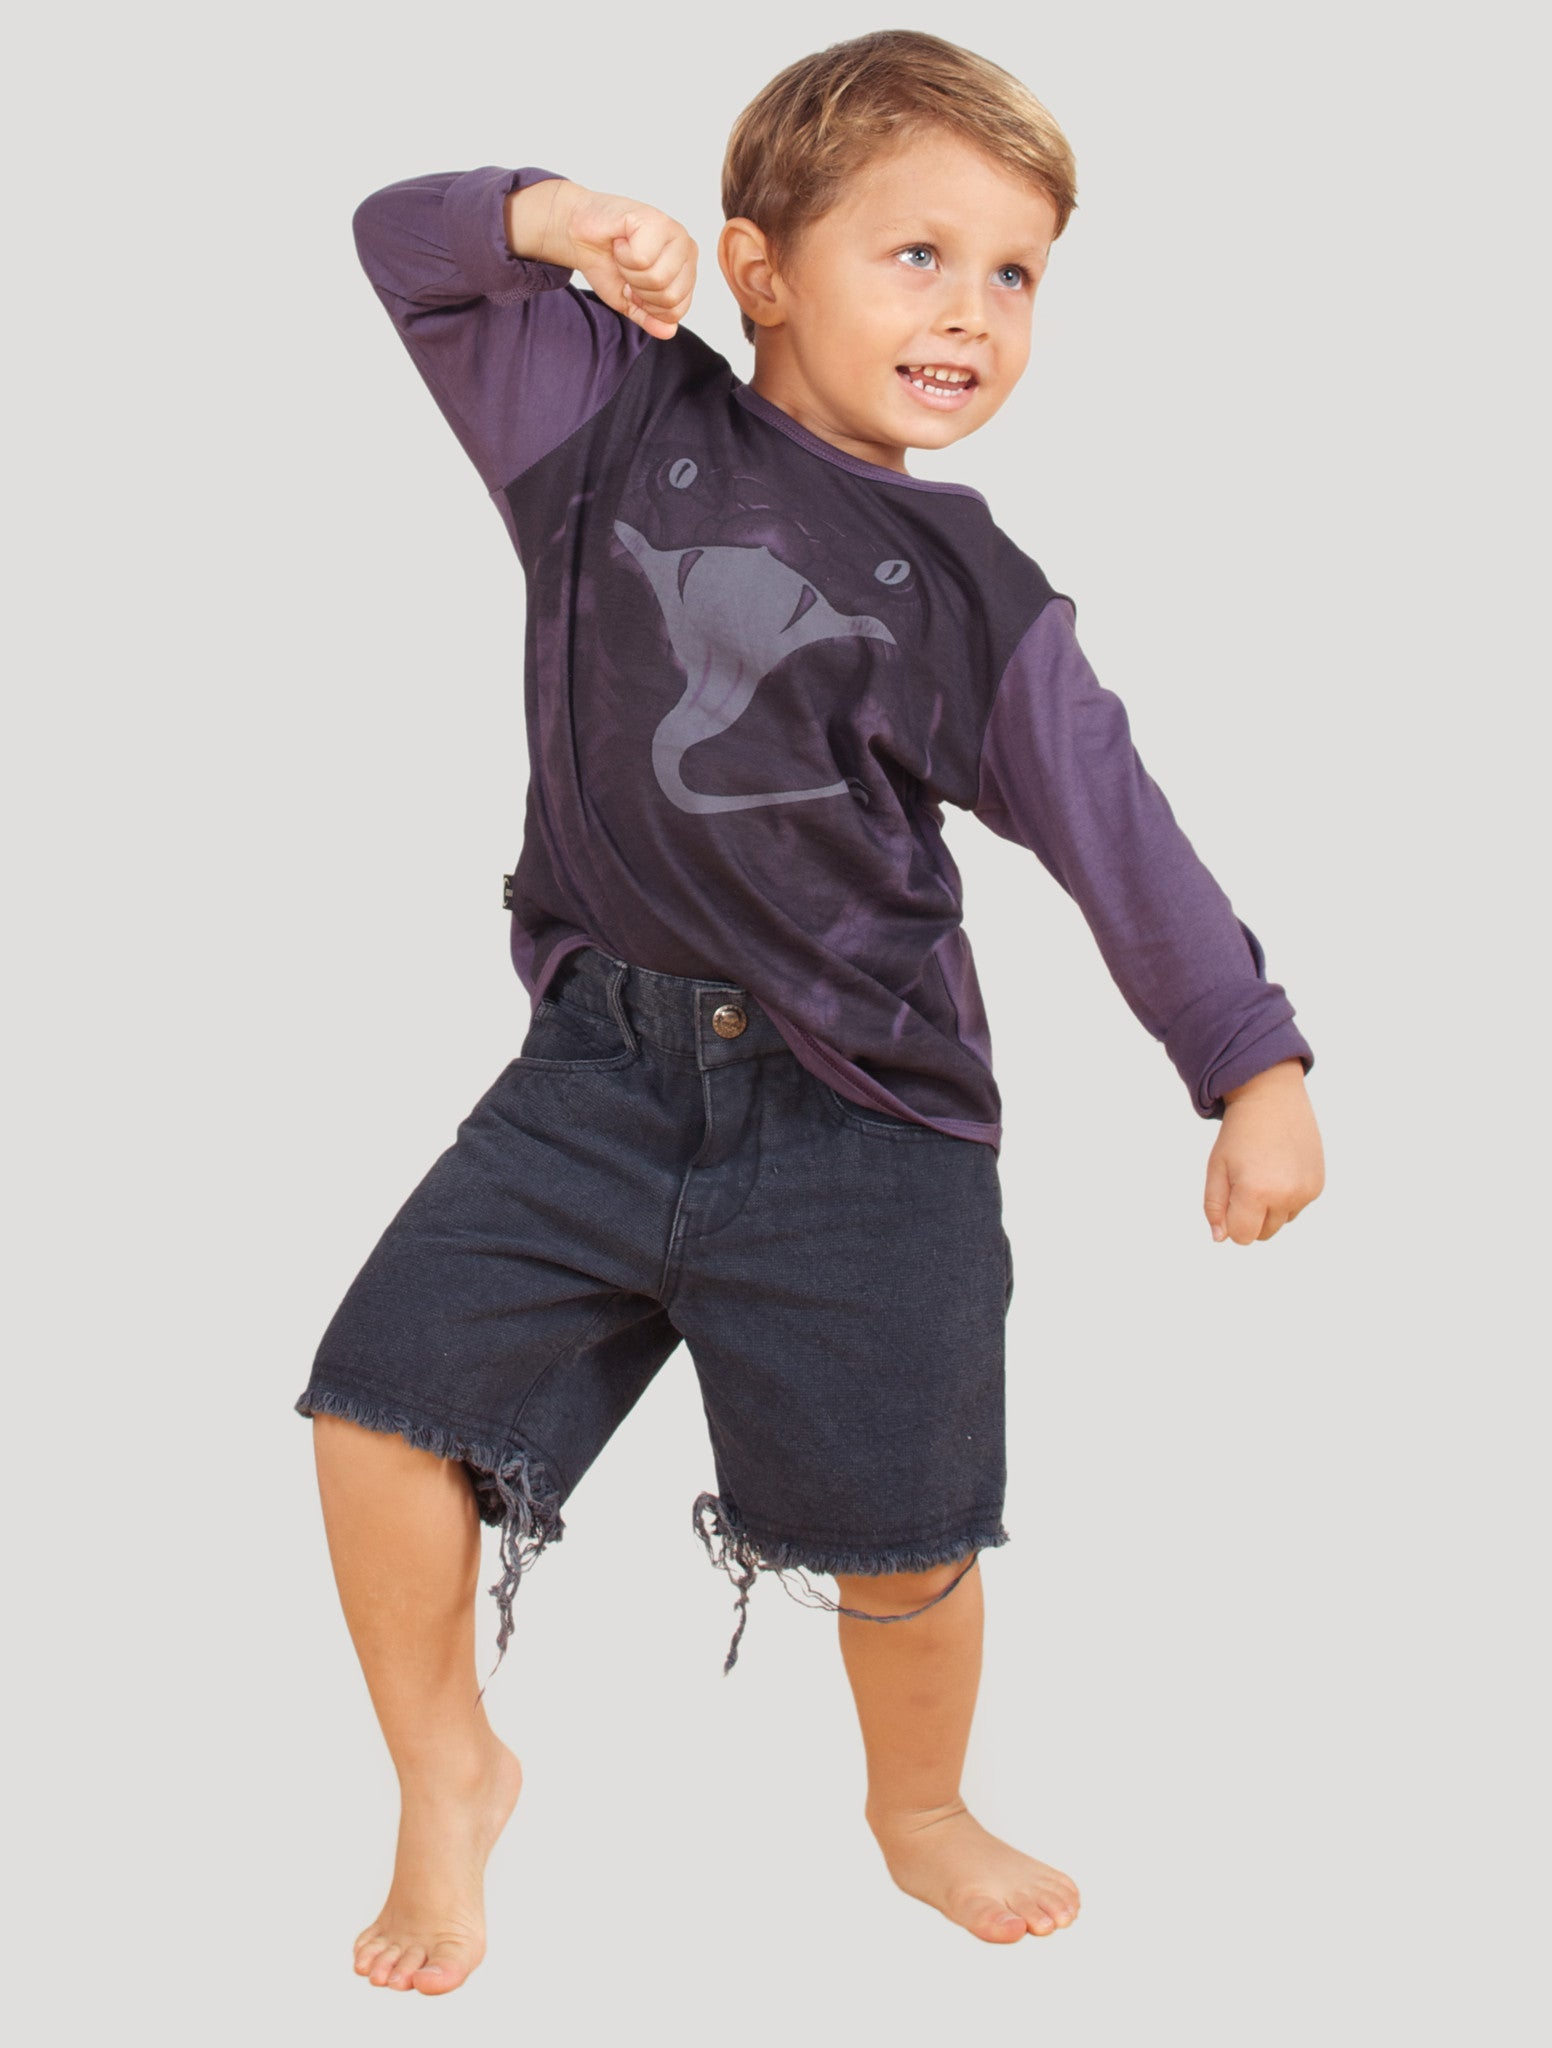 Cobra Long Sleeves Top (Kids)